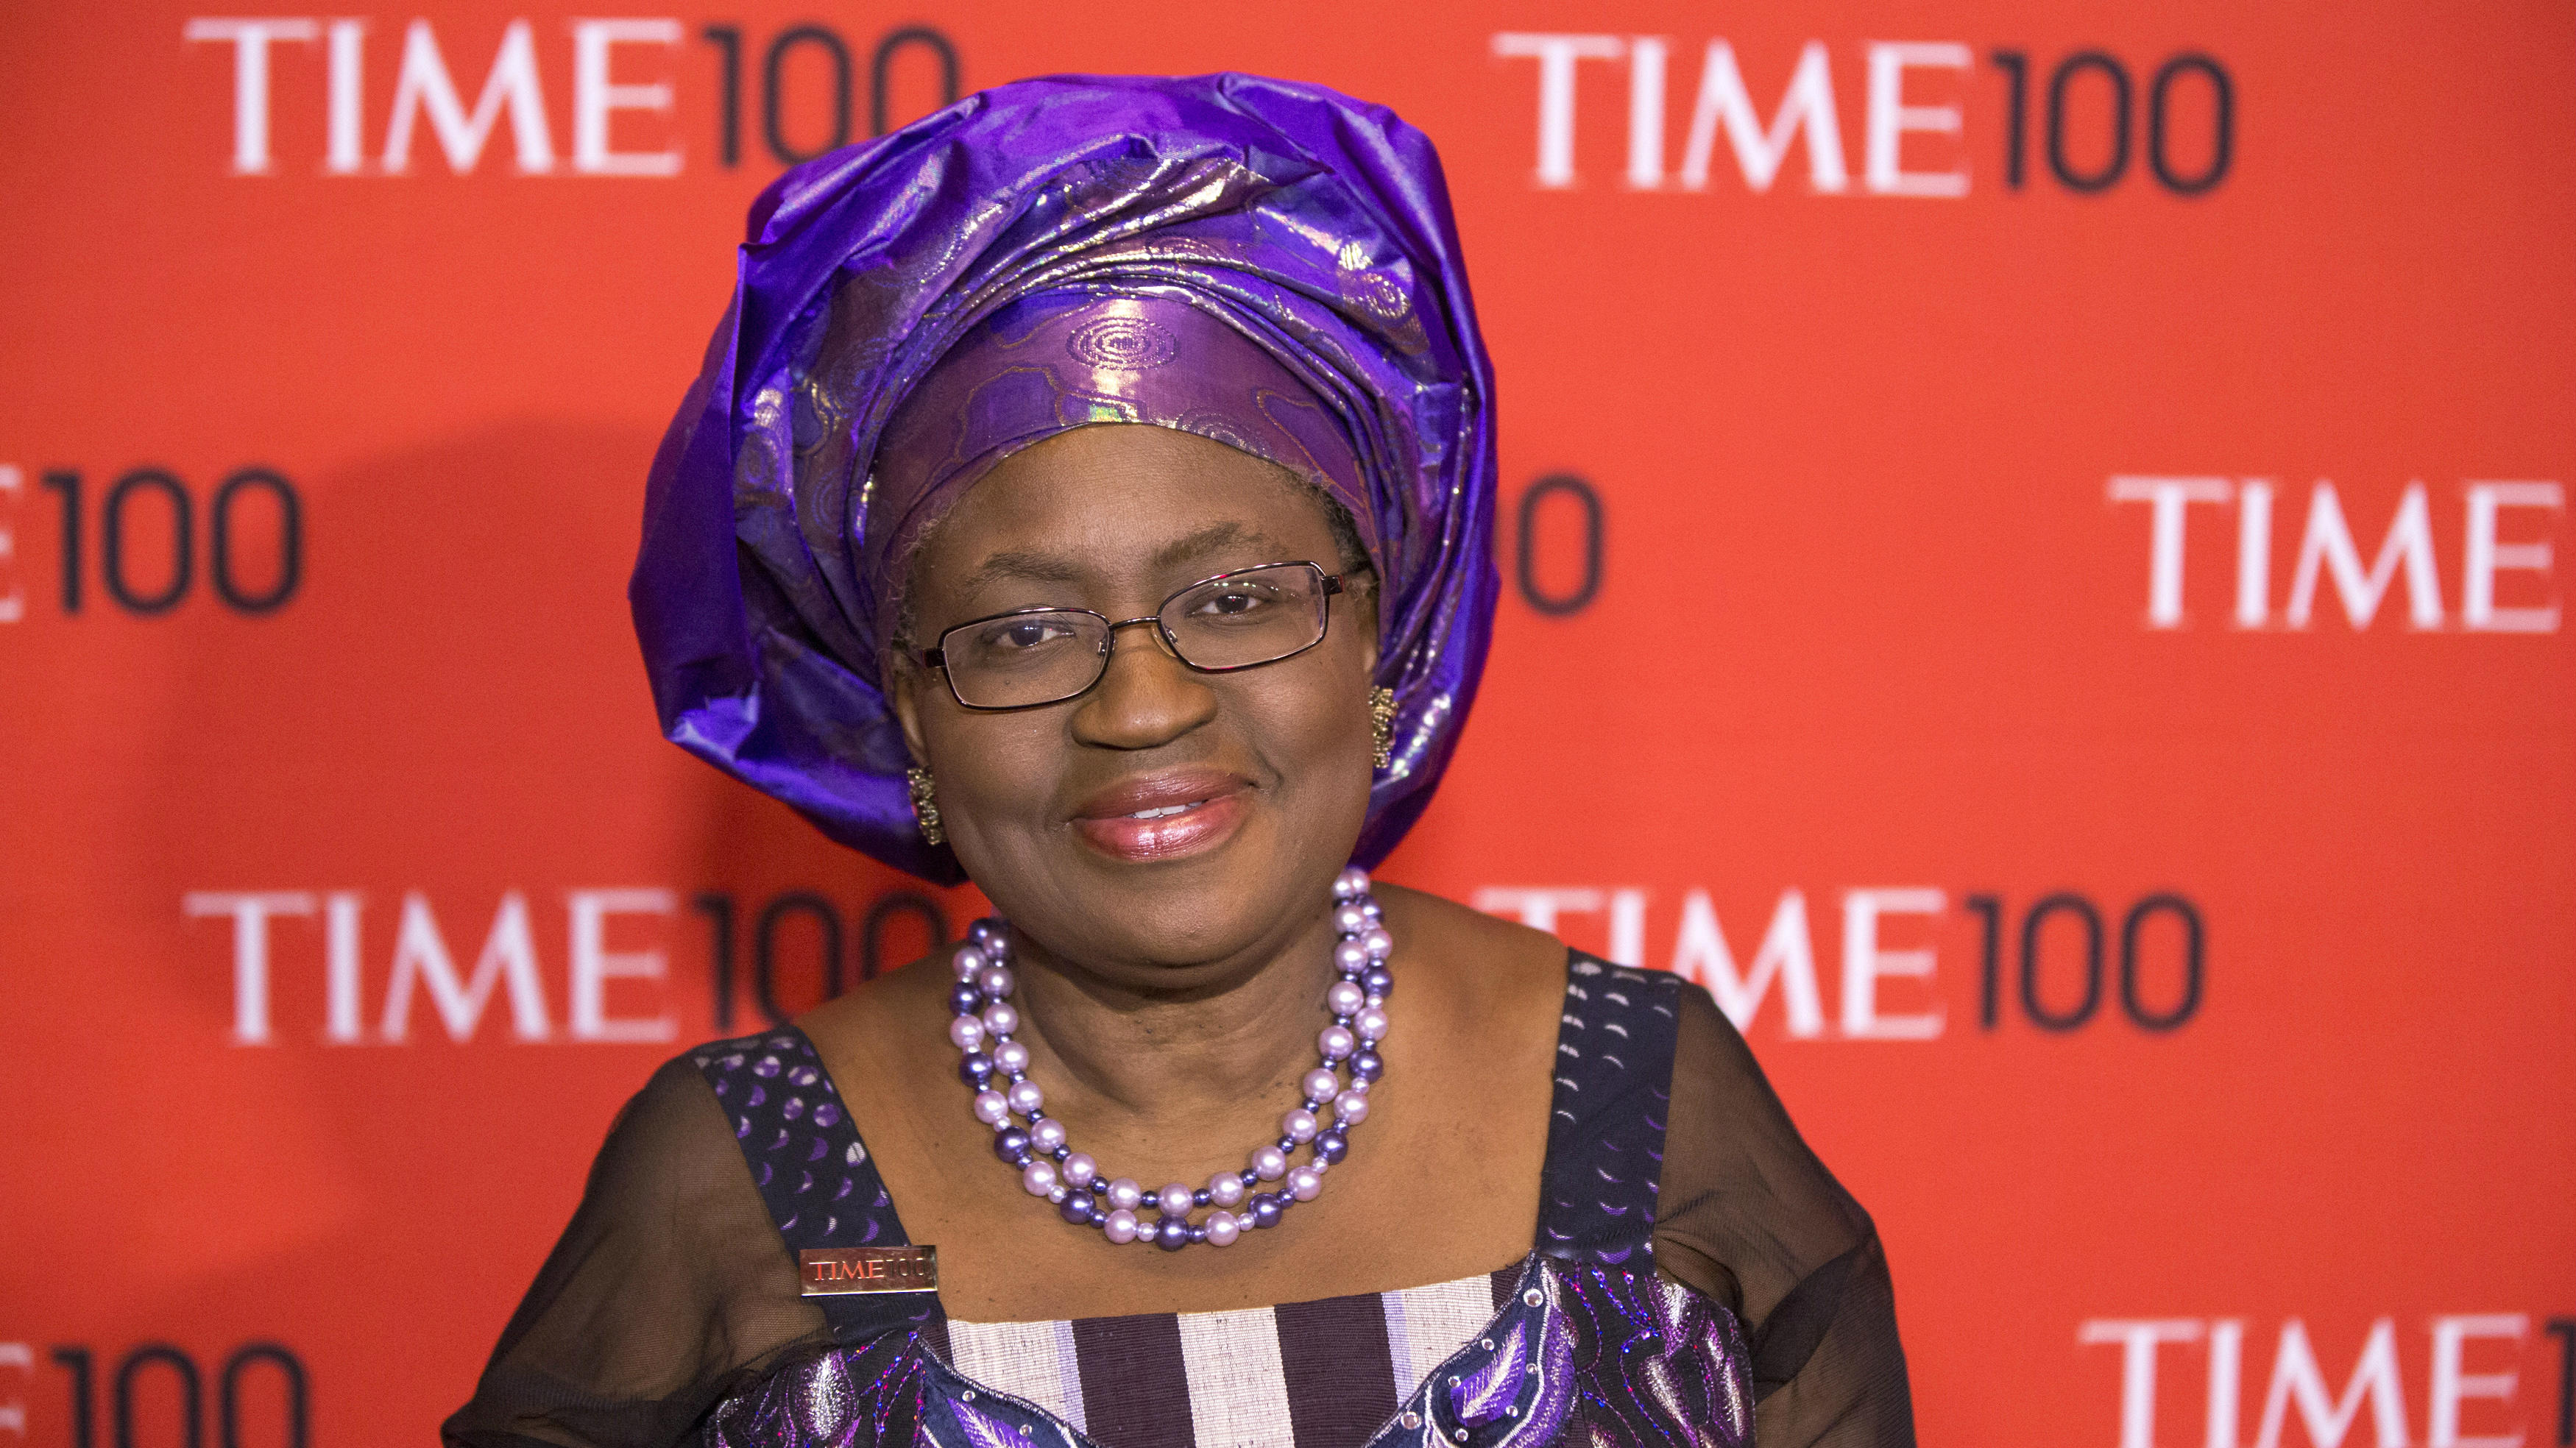 Honoree and the finance minister of Nigeria, Ngozi Okonjo-Iweala arrives at the Time 100 gala celebrating the magazine's naming of the 100 most influential people in the world for the past year in New York April 29, 2014. REUTERS/Lucas Jackson (UNITED STATES - Tags: ENTERTAINMENT BUSINESS MEDIA POLITICS)